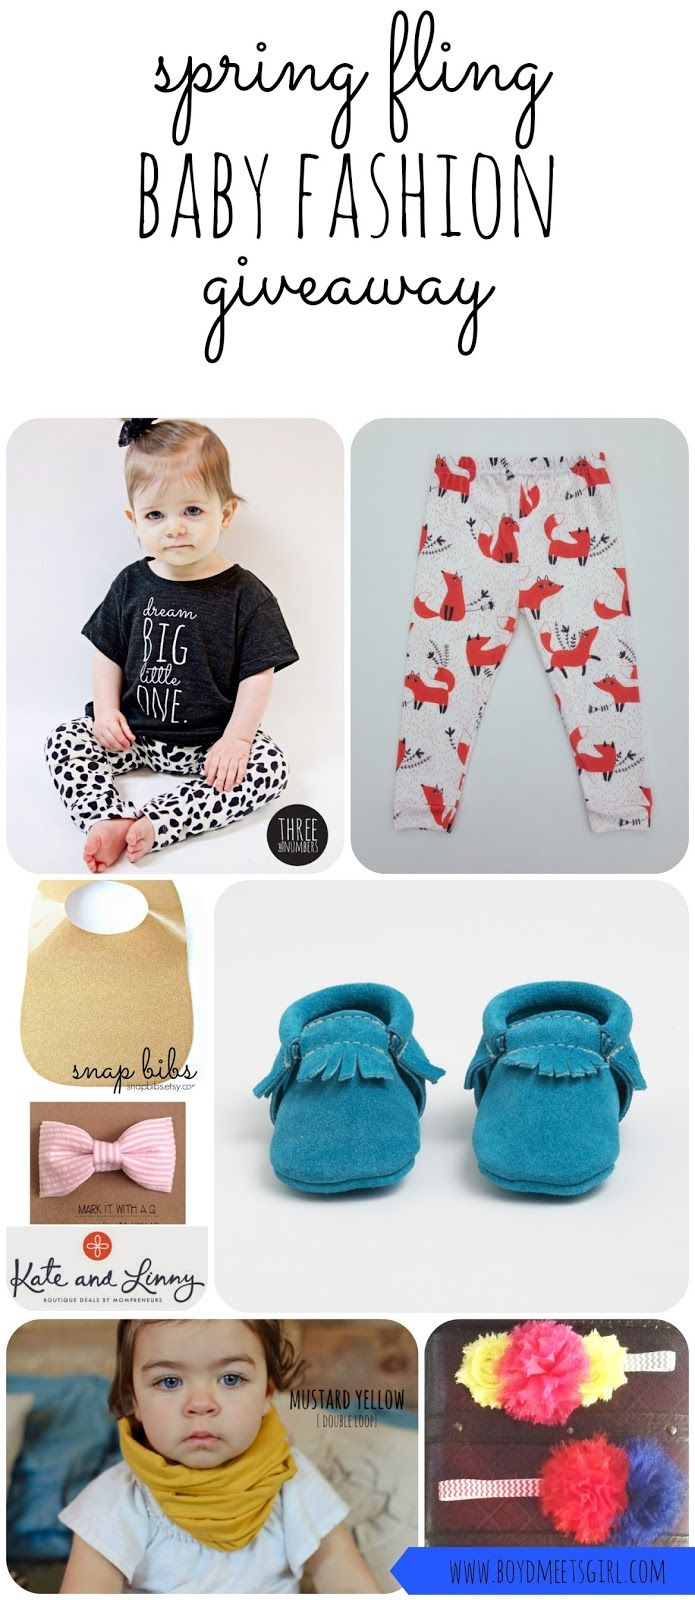 Spring Fling Baby Fashion Giveaway featuring Freshly Picked, Three Little Numbers, Wild Frays, Mag+Pie, Snapbibs, Kate&Linny, and Miss Charlie's Bowtique,!!! #giveaway #freebabystuff @Amanda Thiessen @Kate and Linny @Jessica Numbers